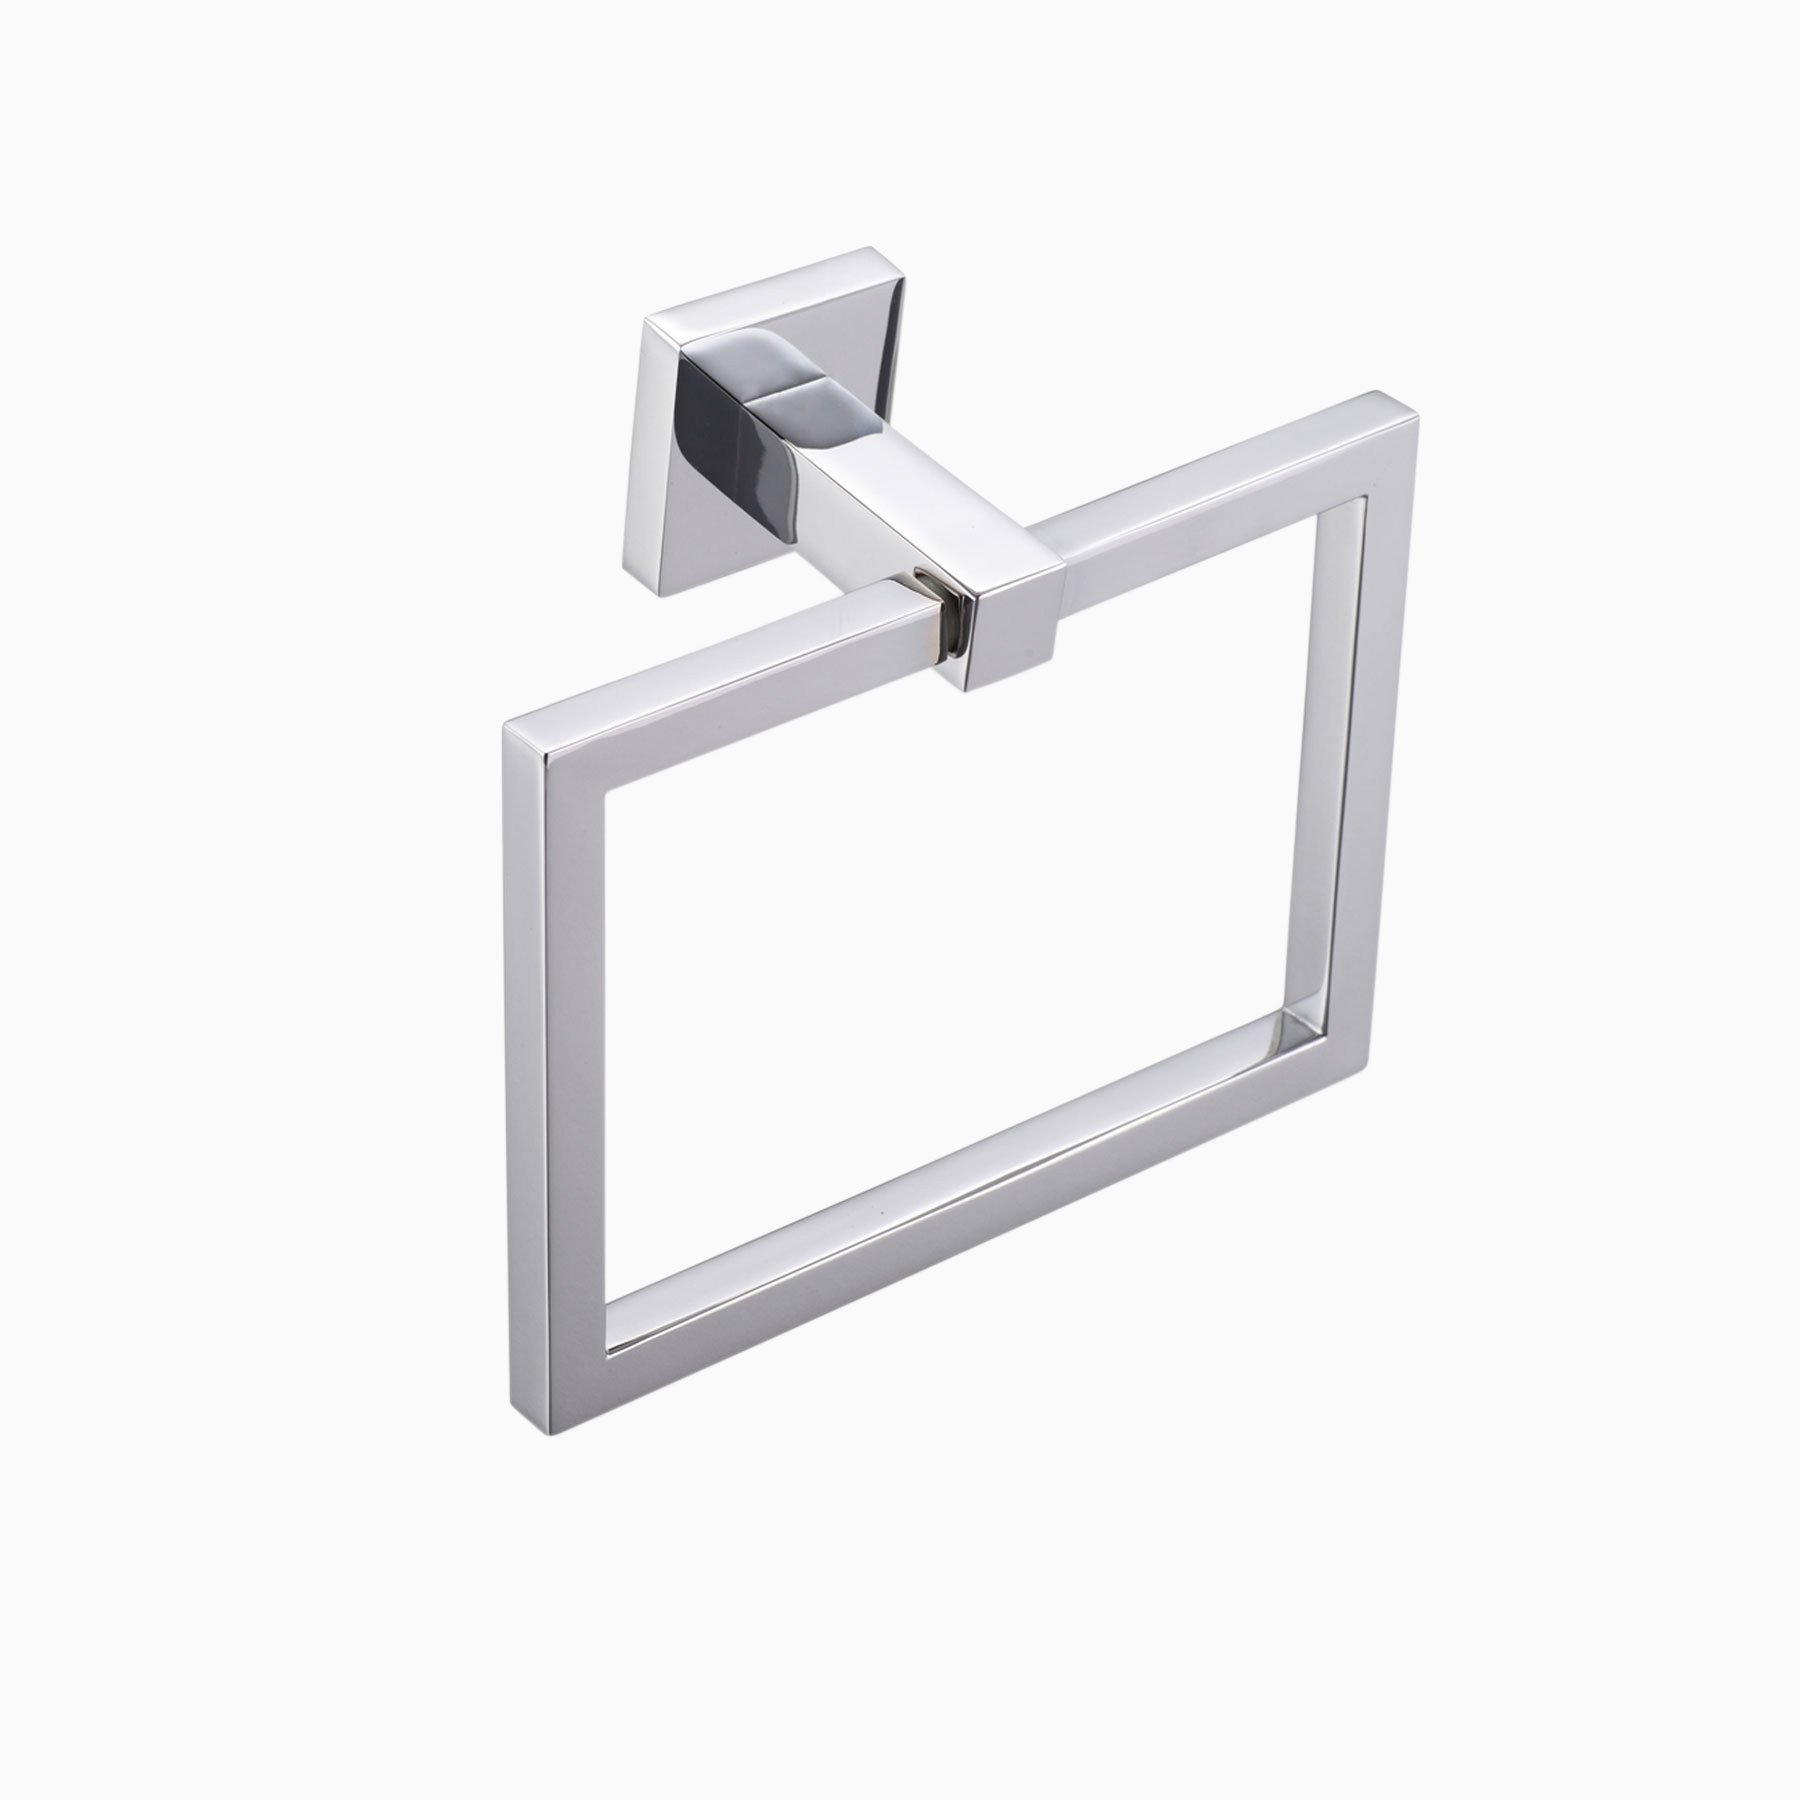 Countertop Towel Ring Mitte Brass Wall Mounted Bathroom Towel Ring Modern